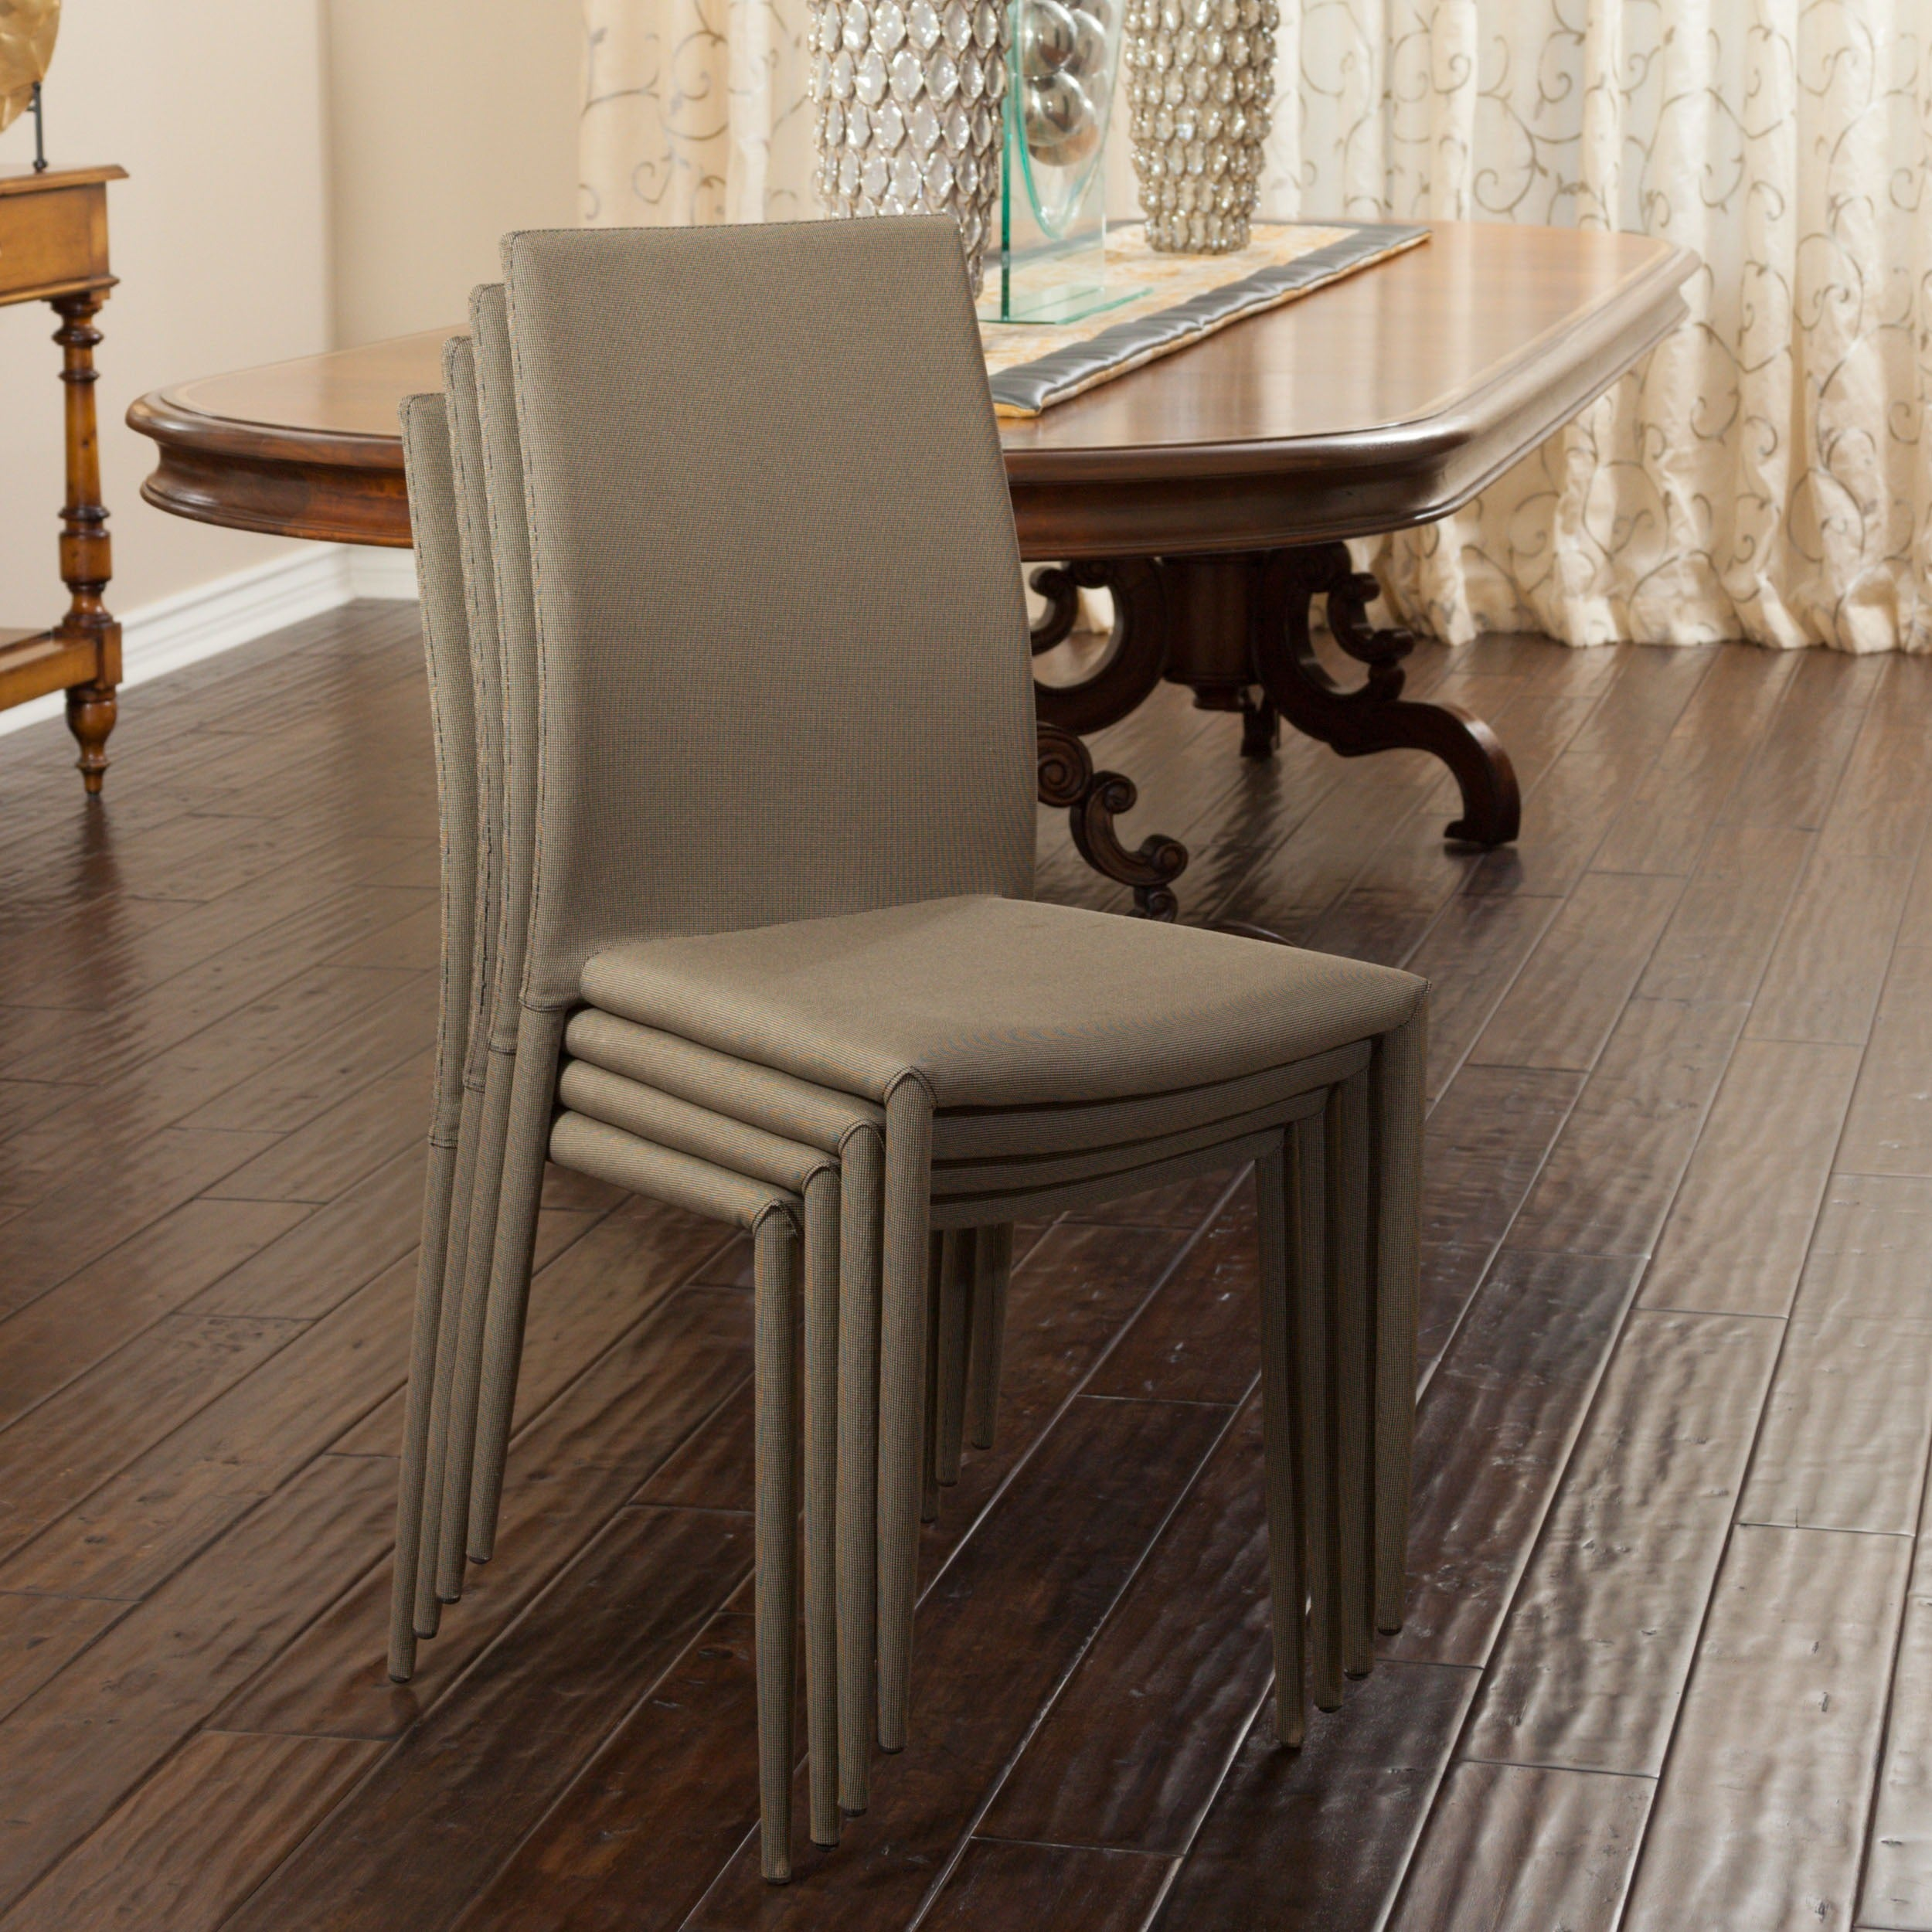 Shop christopher knight home wayfield dining chair set of 4 free shipping today overstock 9275231